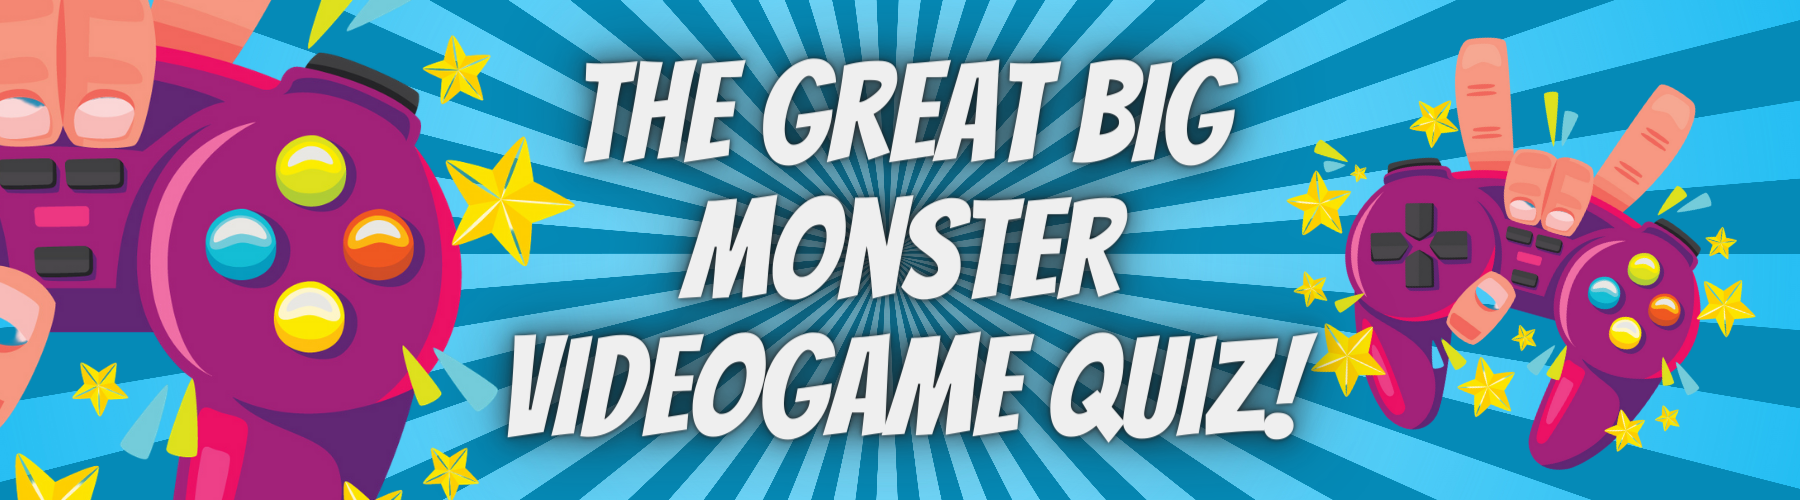 The Great Big Monster Videogame Quiz!